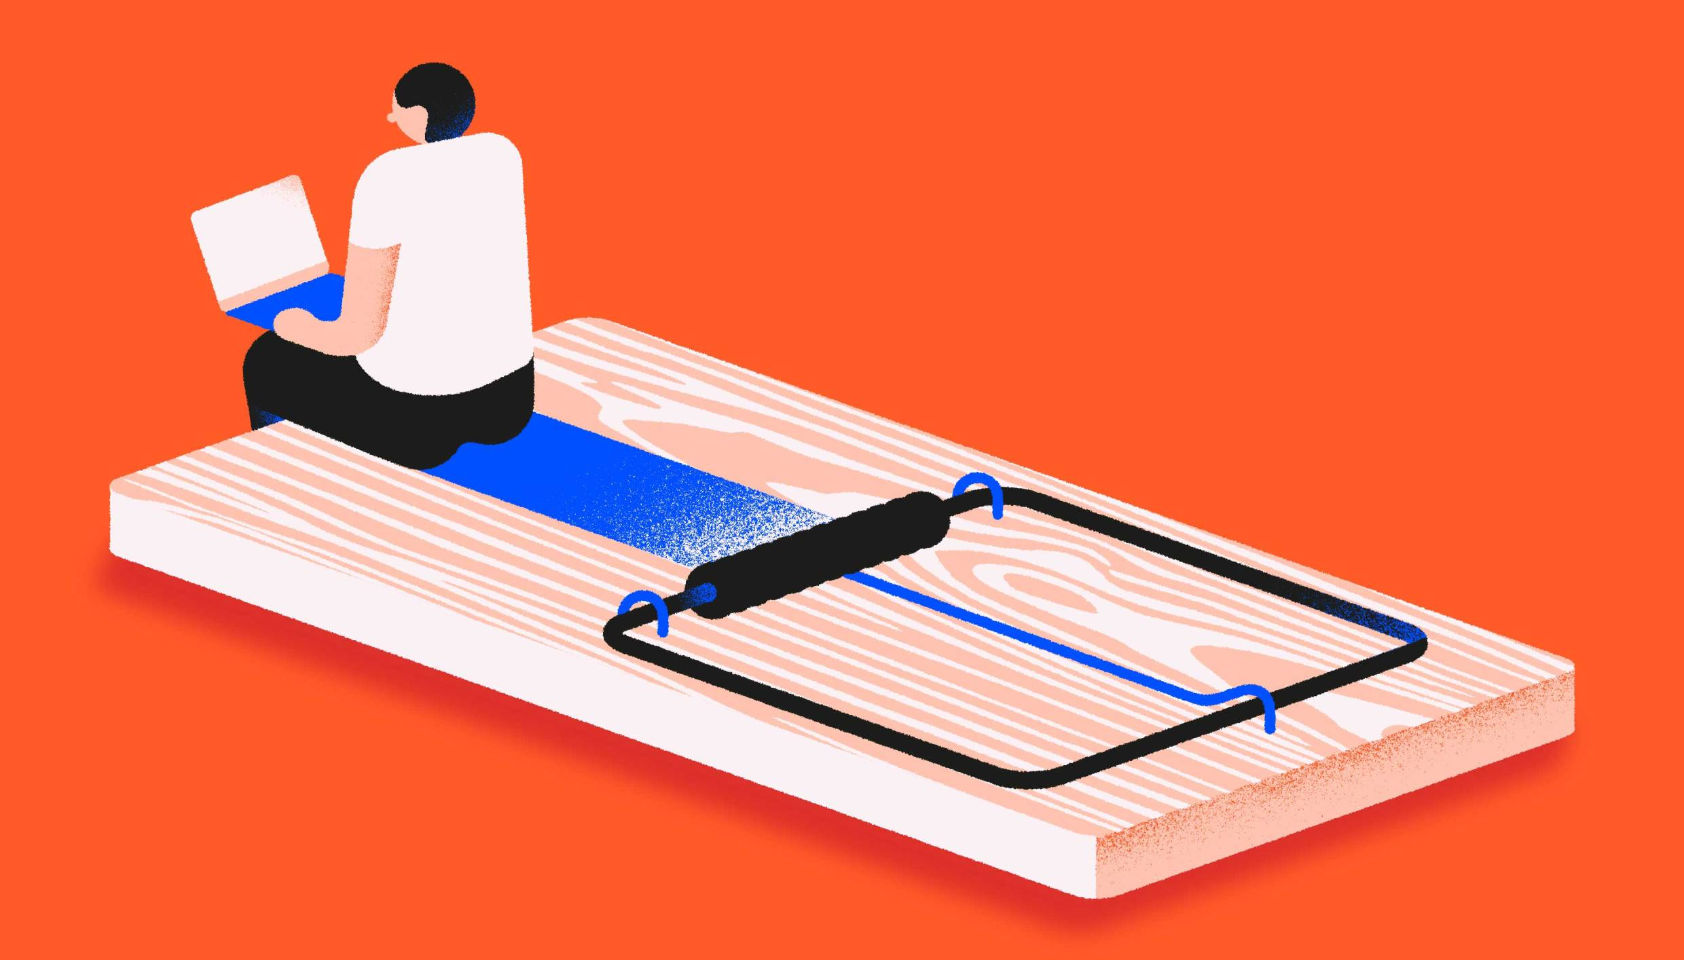 Popular design news of the week: May 20, 2019 - May 26, 2019